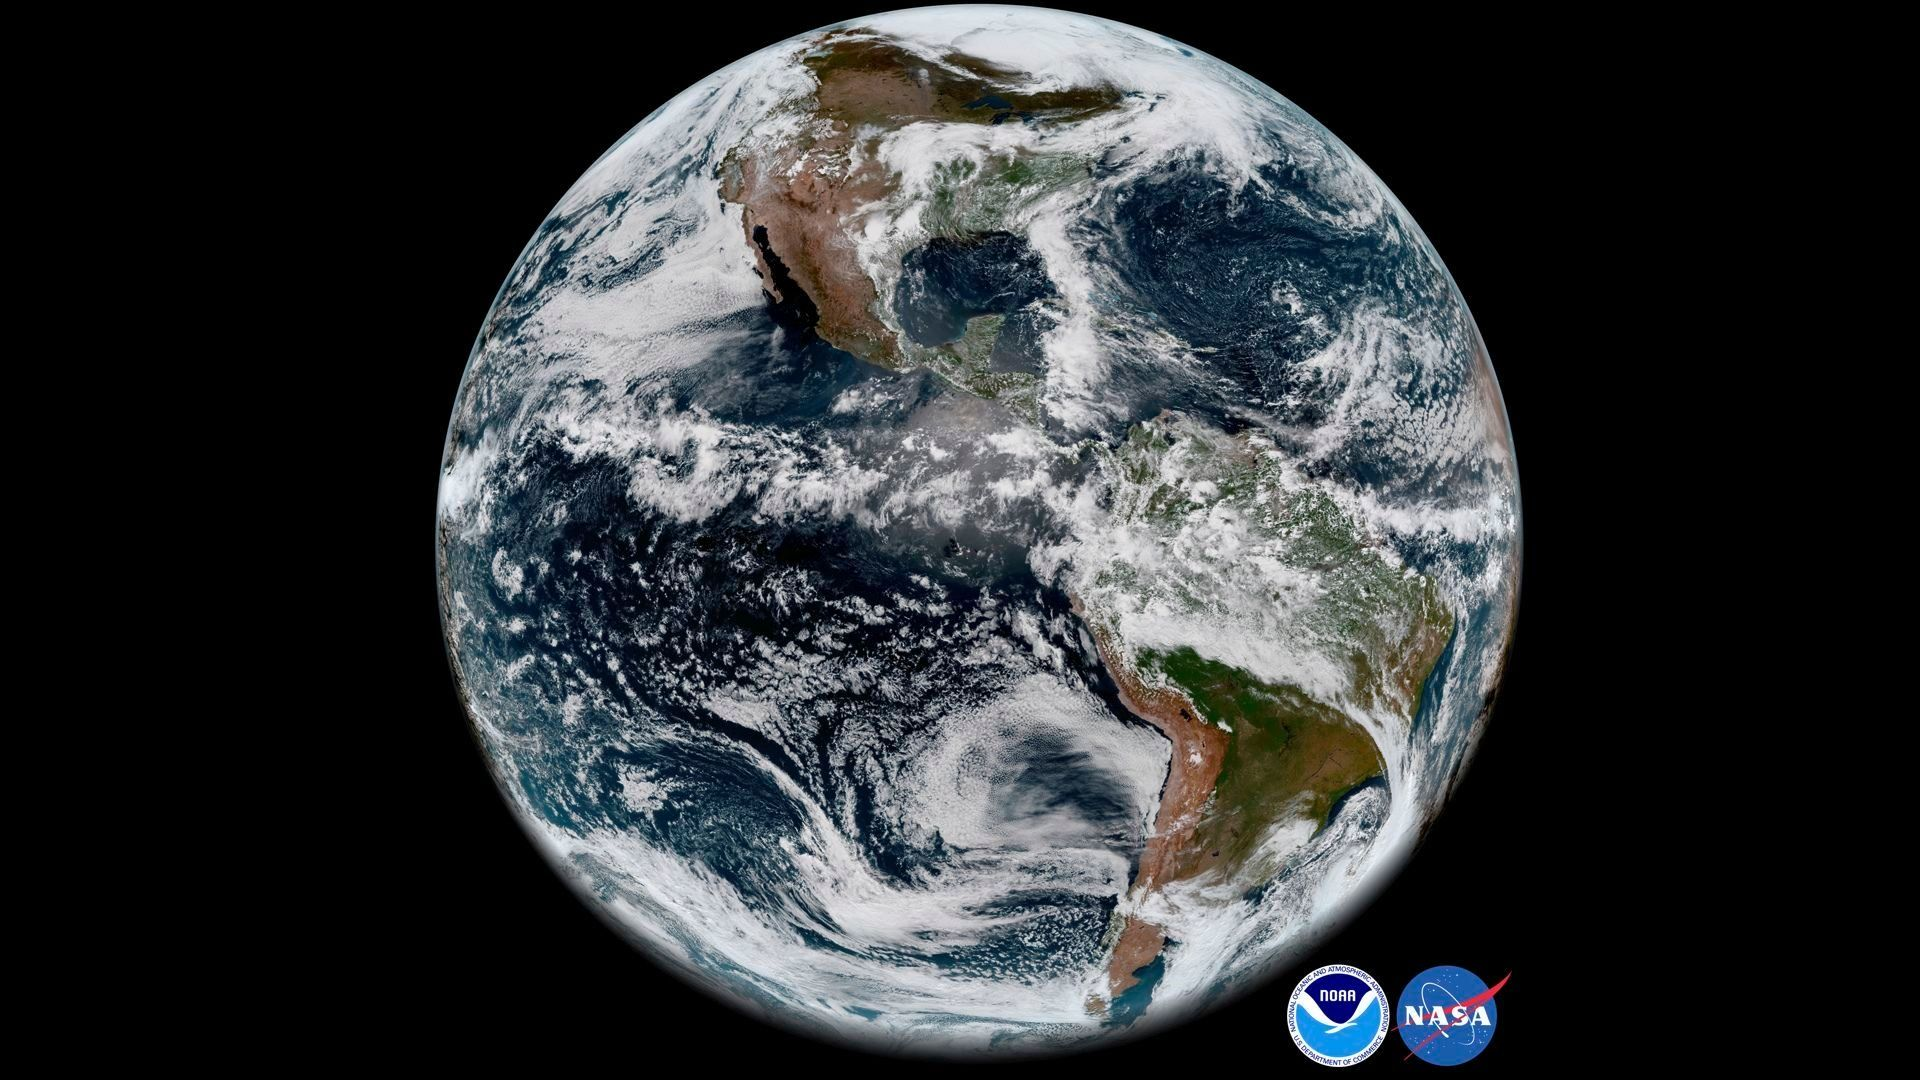 Satellite Image Of Earth Original From Nasa Digitally Enhanced By Rawpixel Free Image By Rawpixel Com Satellite Image Nasa Nasa Images